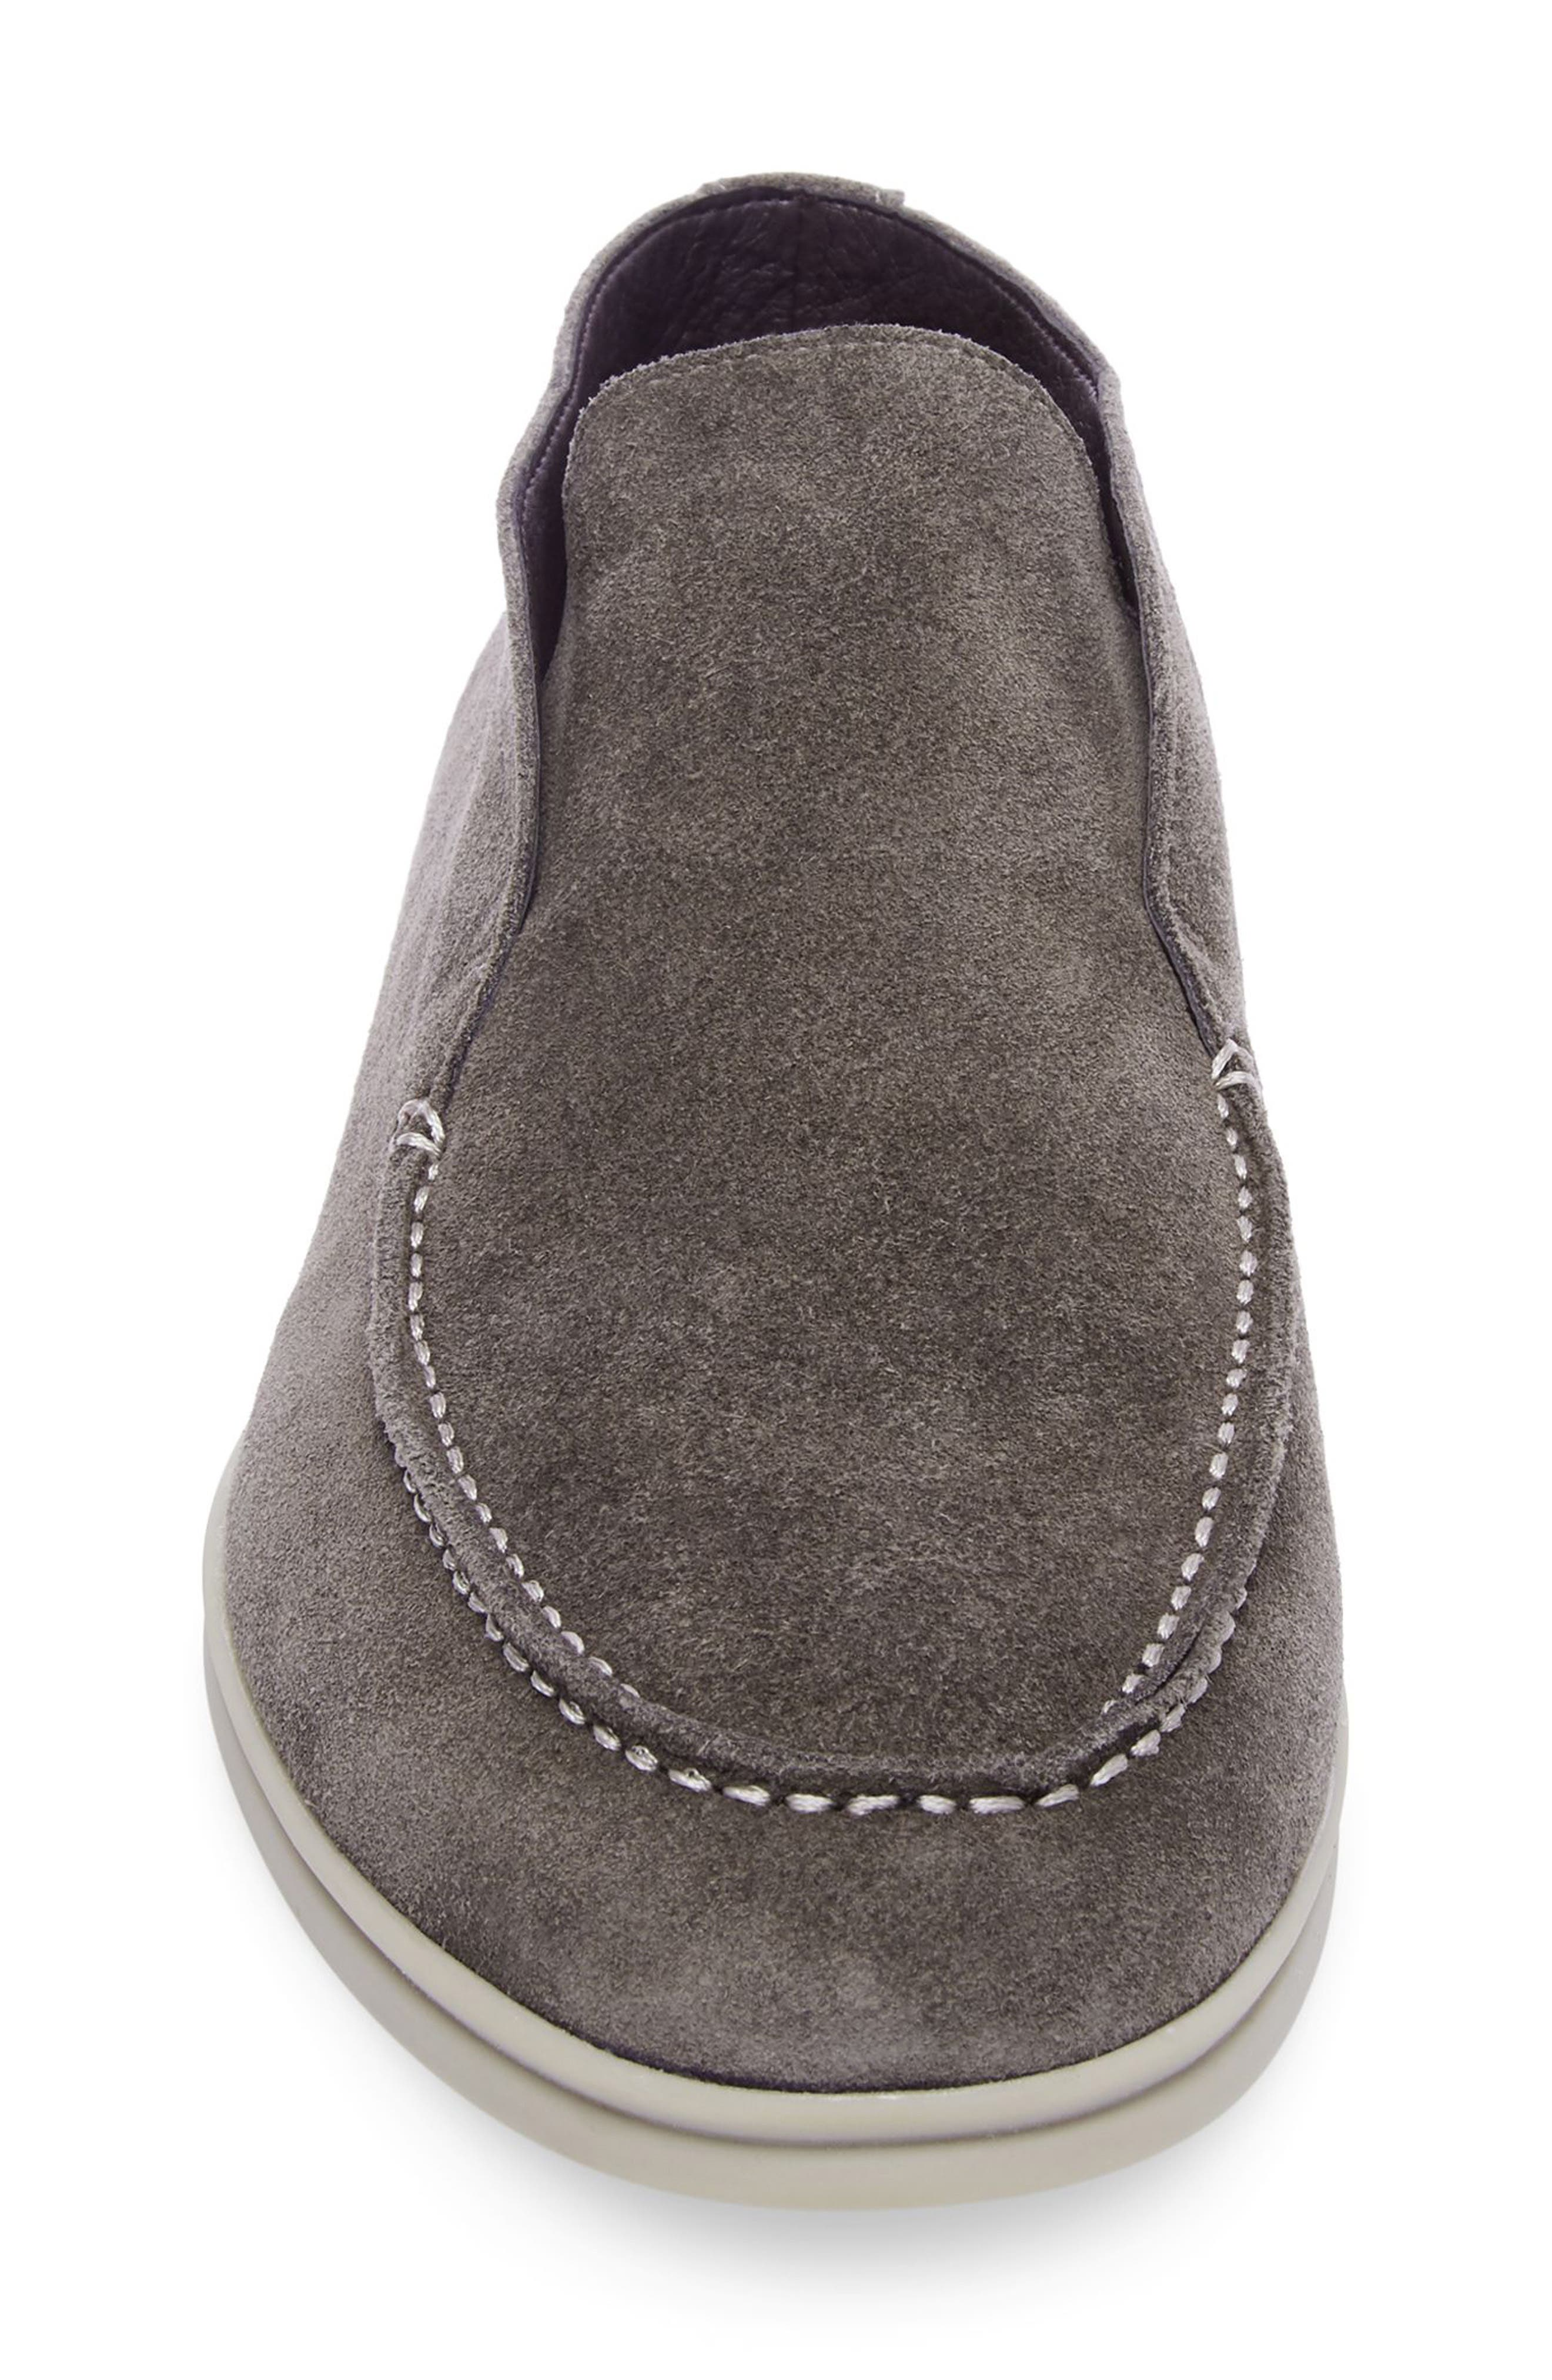 Boot,                             Alternate thumbnail 4, color,                             TAUPE SUEDE